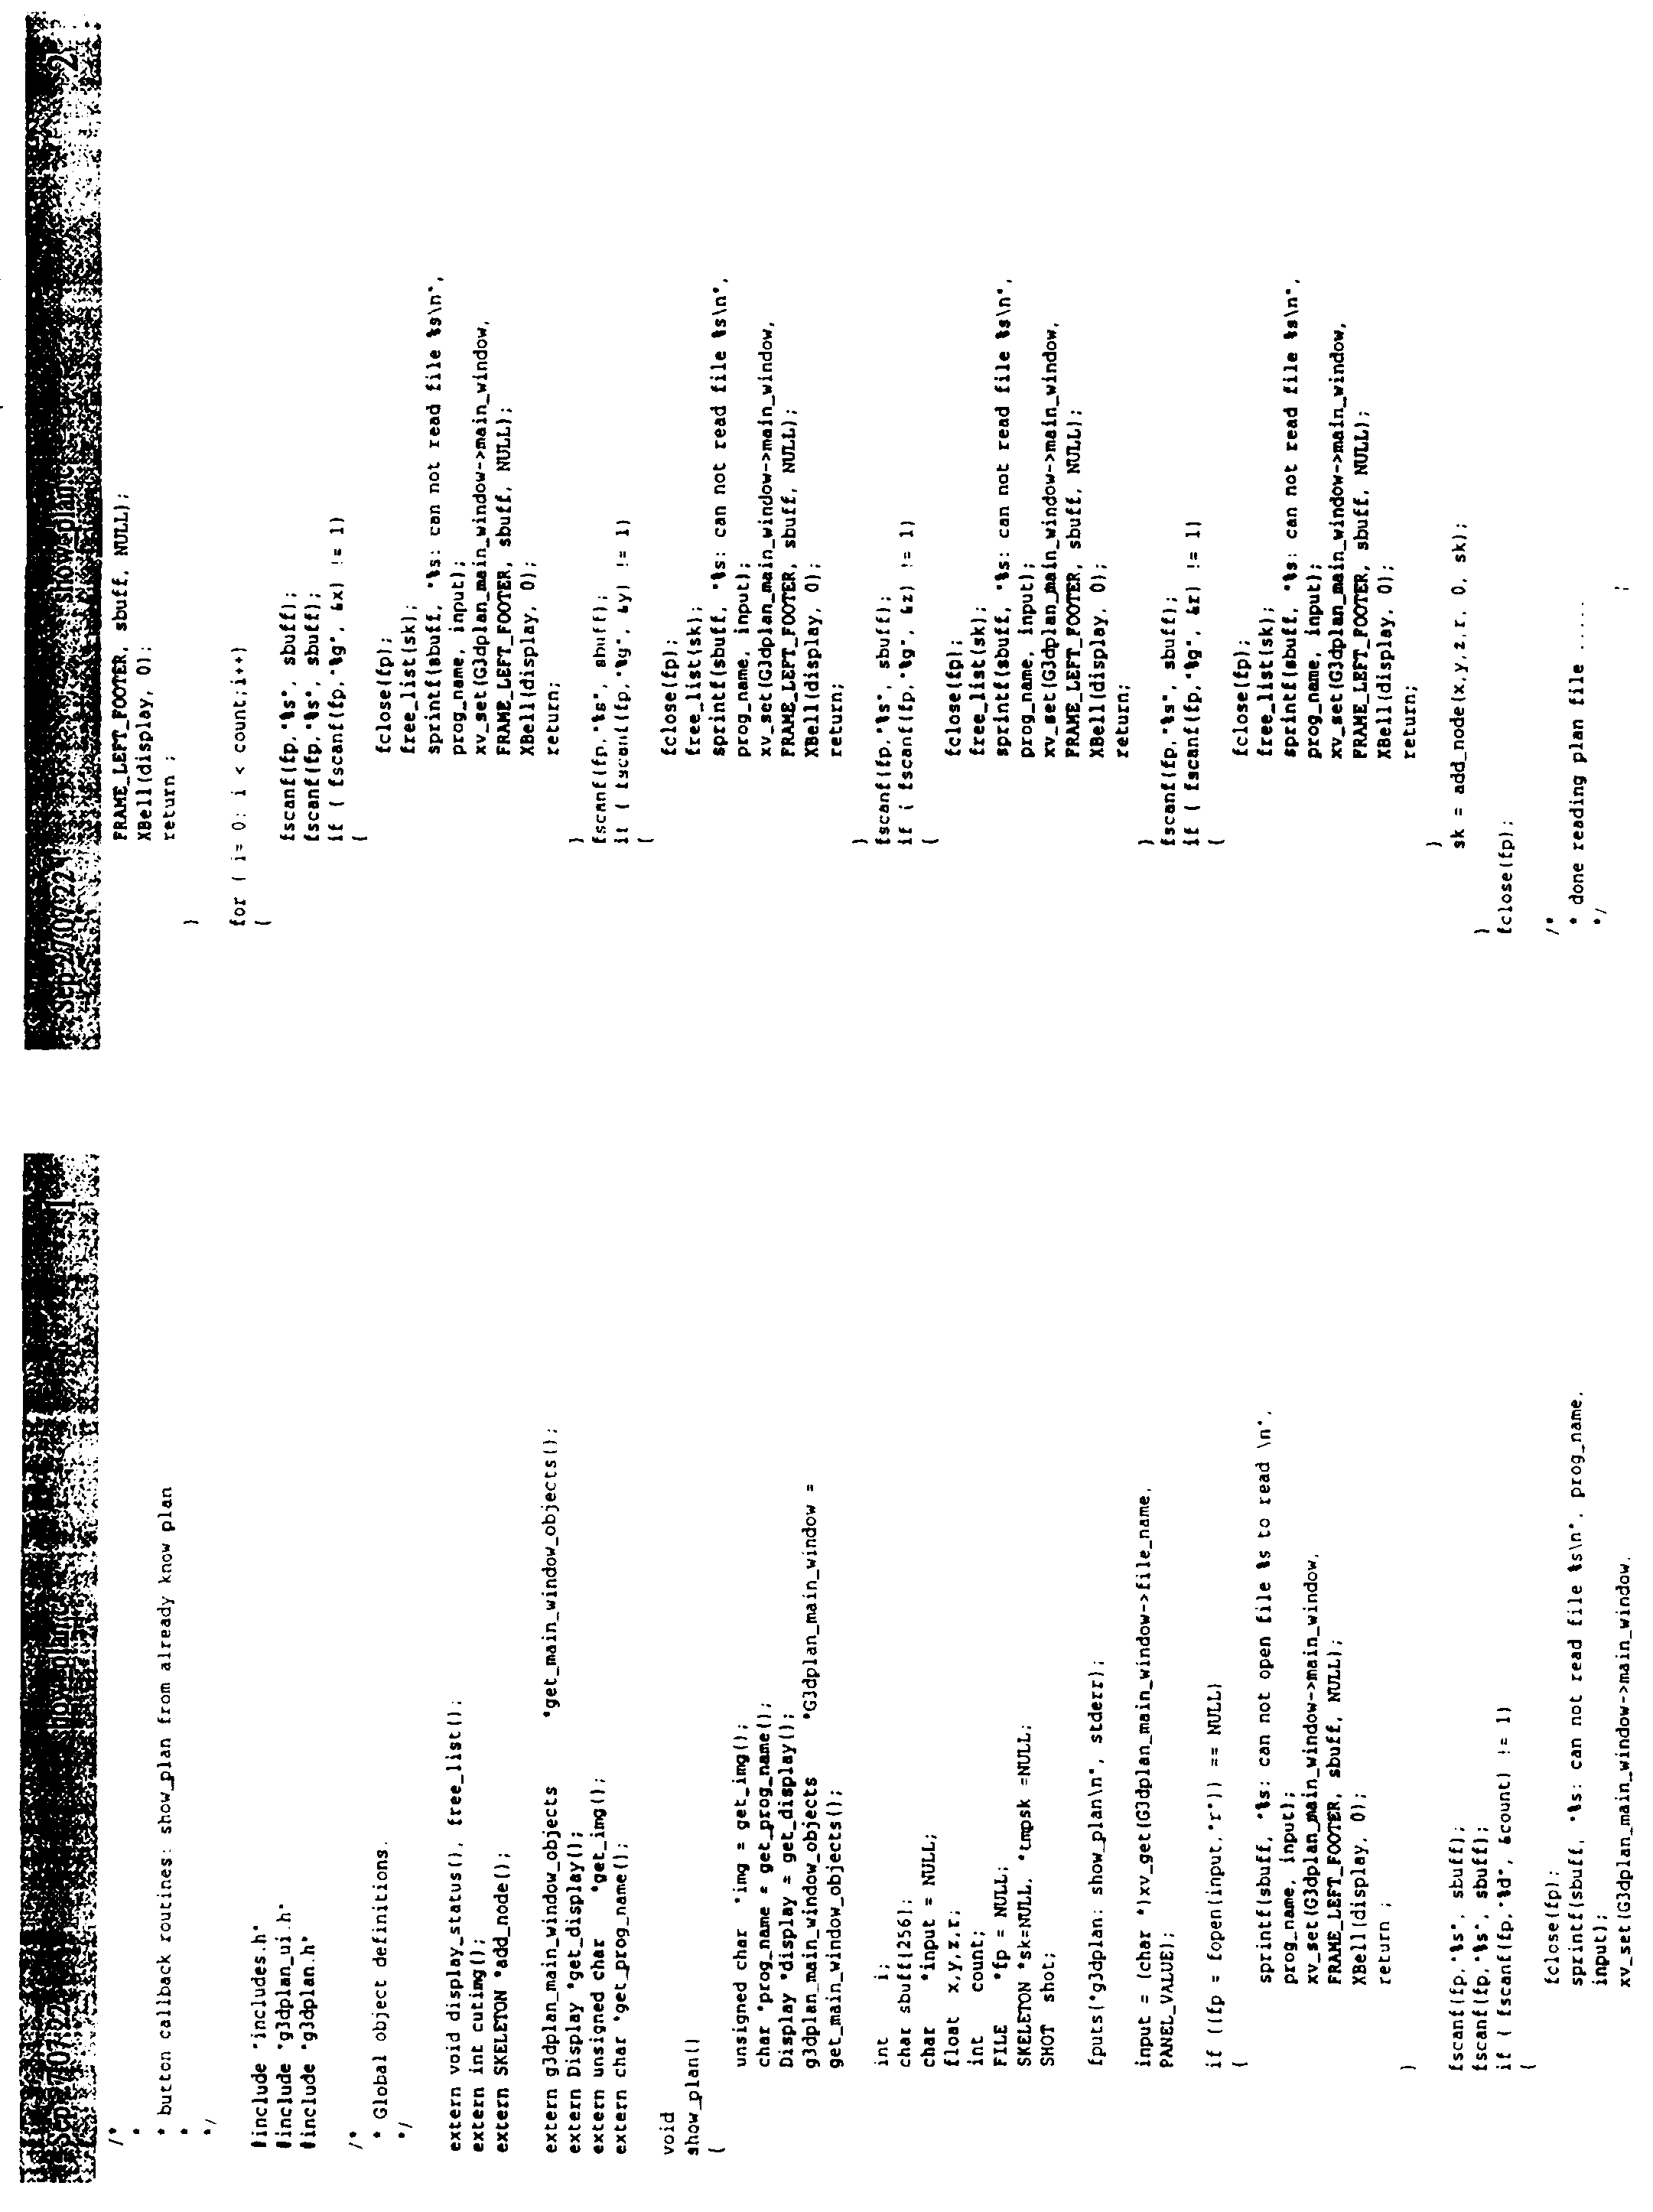 WO1997028845A1 - Radiotherapy treatment using medial access